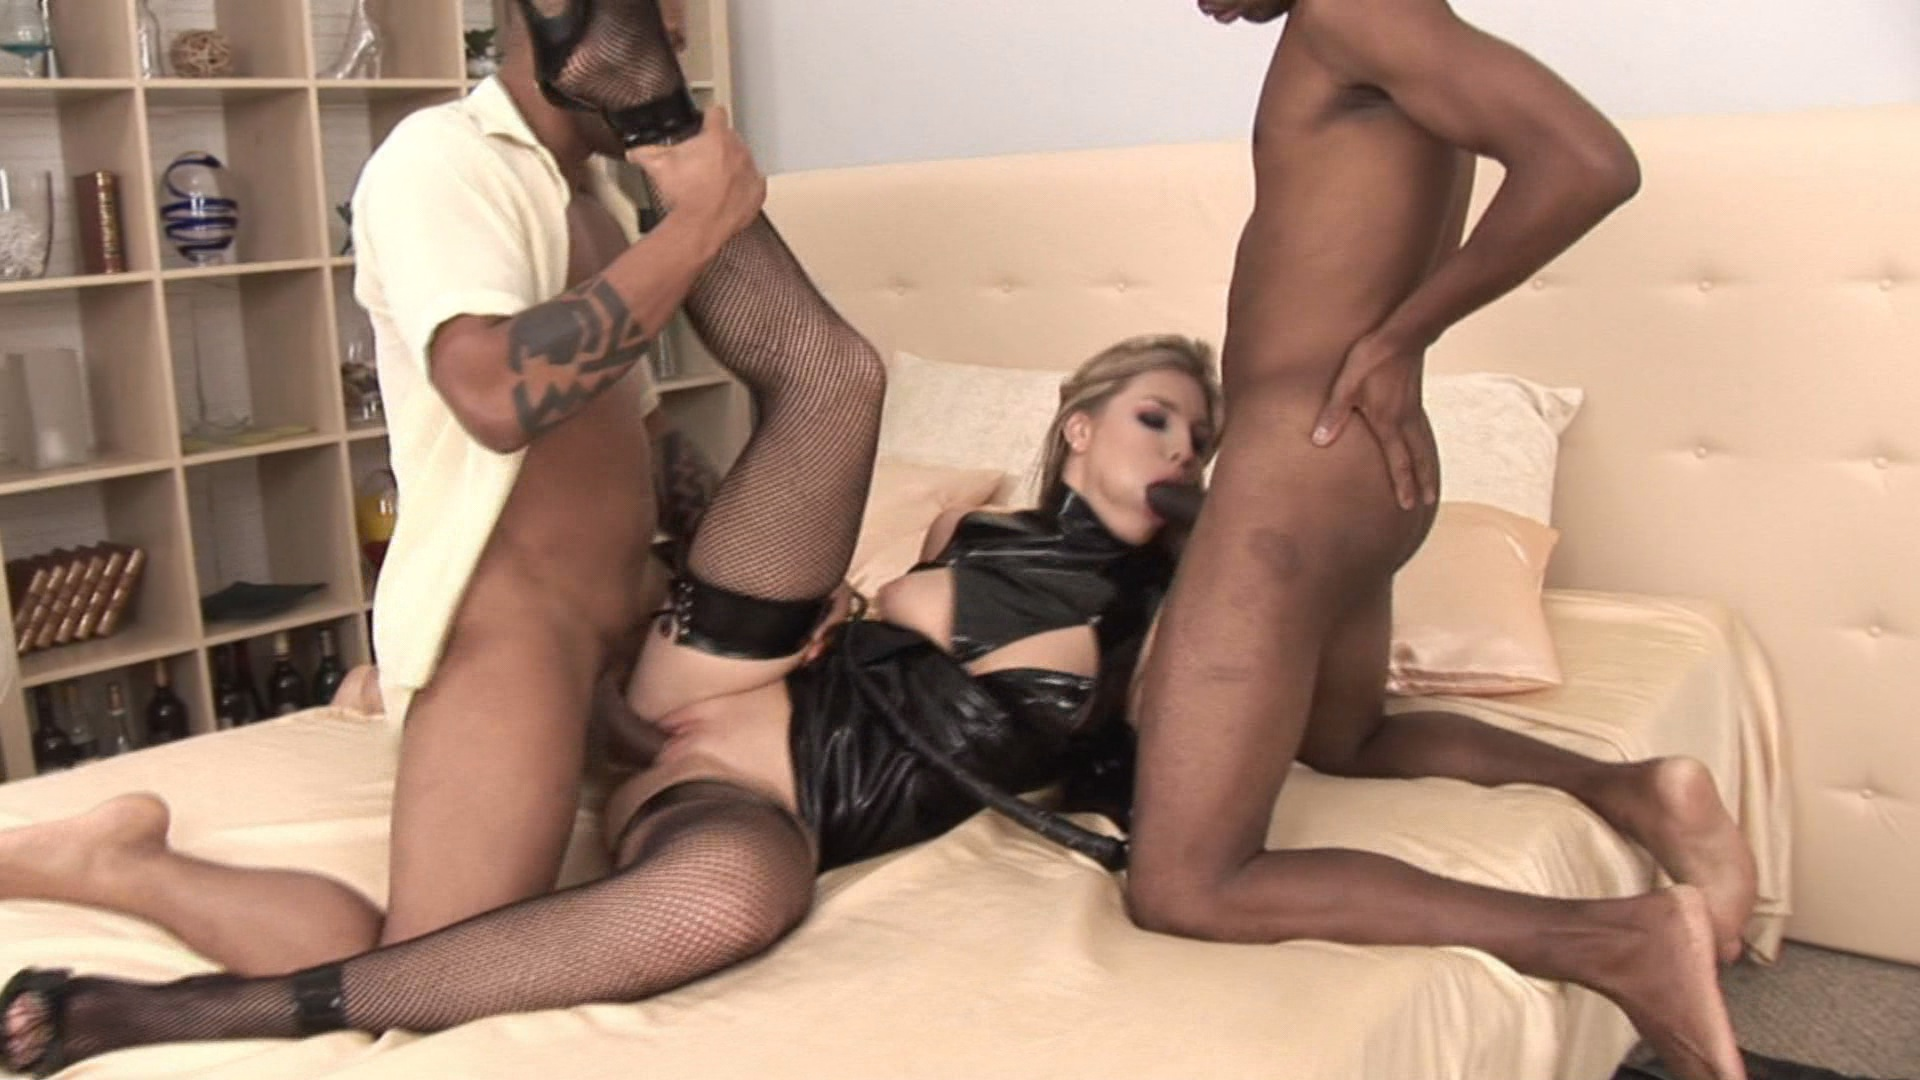 Blondes Look Good On Blacks / Meet eight seductive blondes who love nothing more than the feeling of a massive black cock deep inside them. Katy Caro takes on two at once for some double penetration. Cherry Jul and Hrisanta double up on a guy for a FFM threesome.